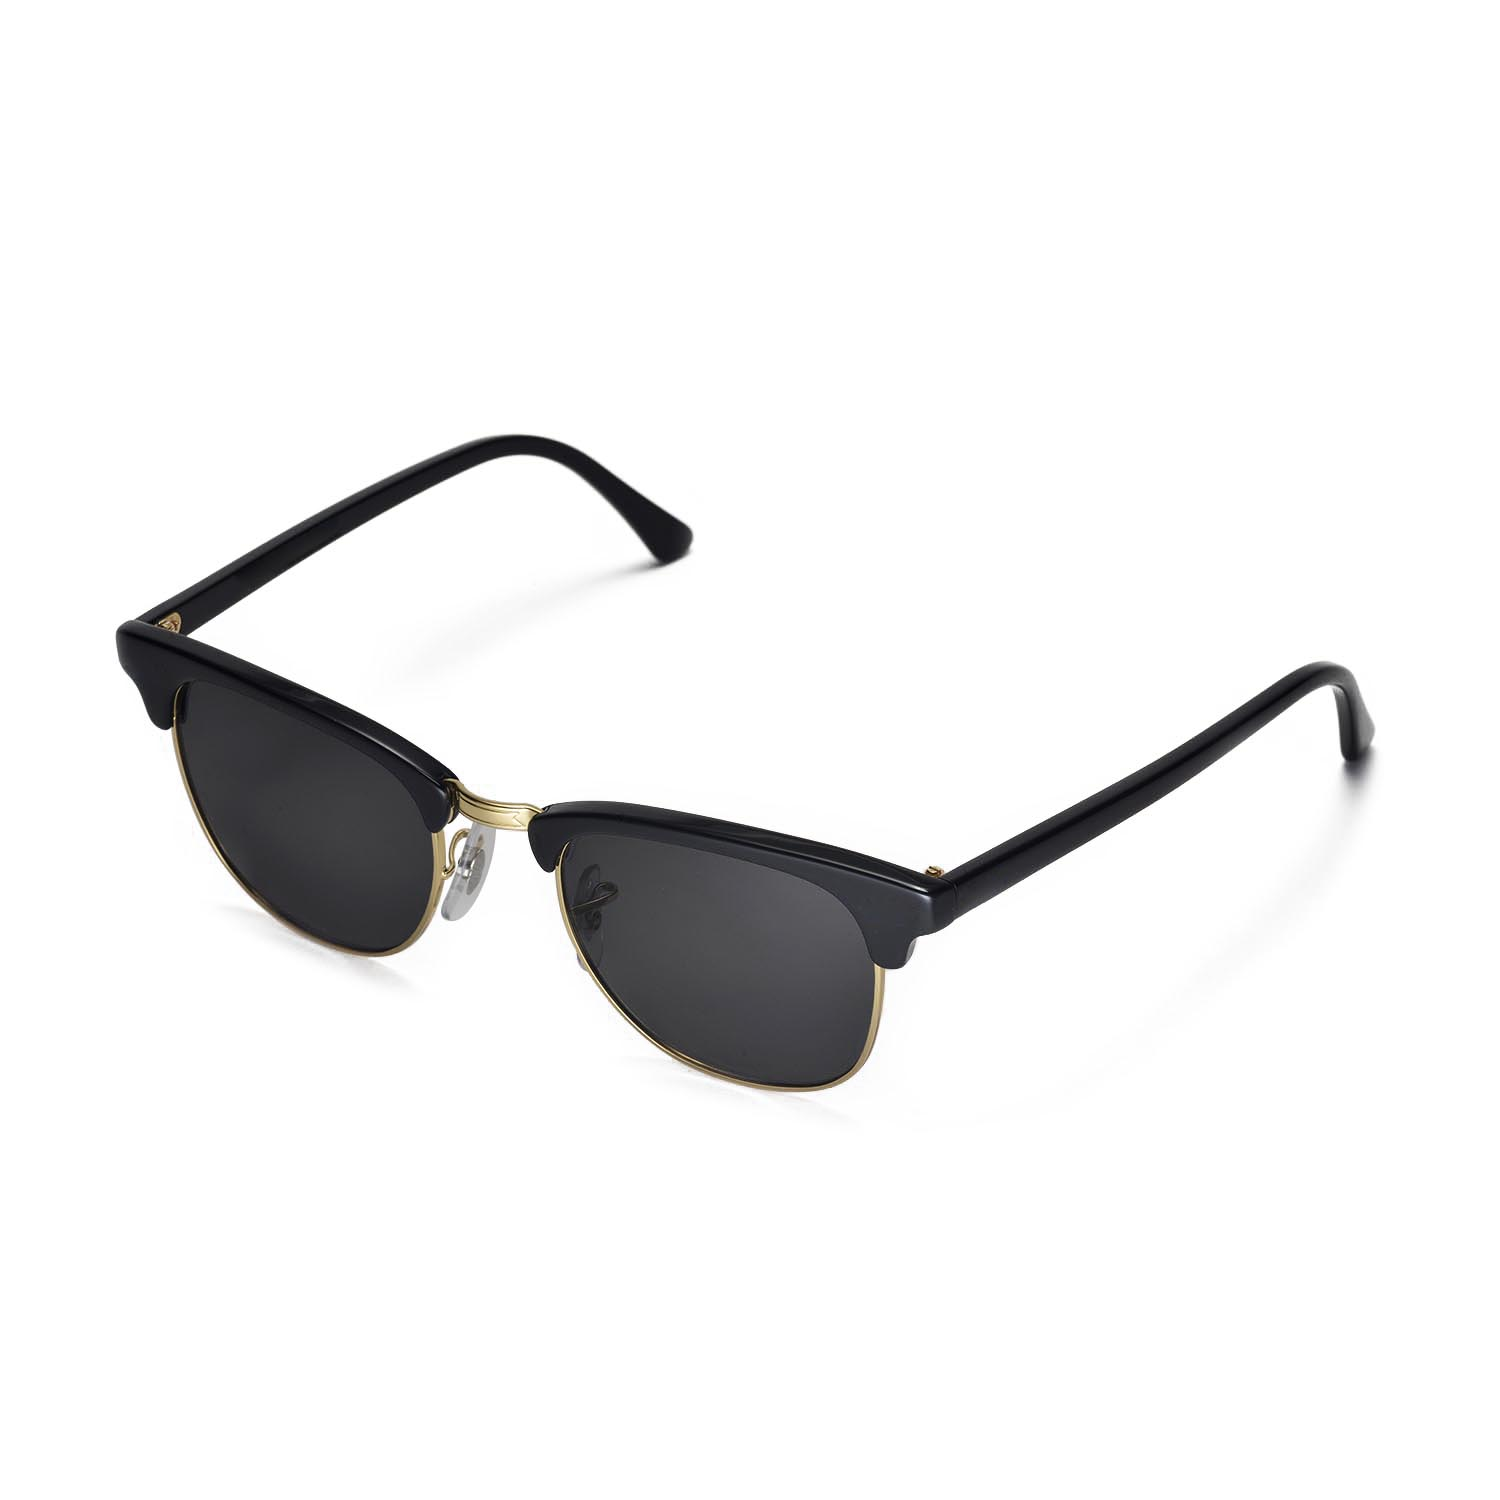 ray ban clubmaster rb3016 sunglasses  New Walleva Polarized Black Lenses For Ray-Ban Clubmaster RB3016 ...